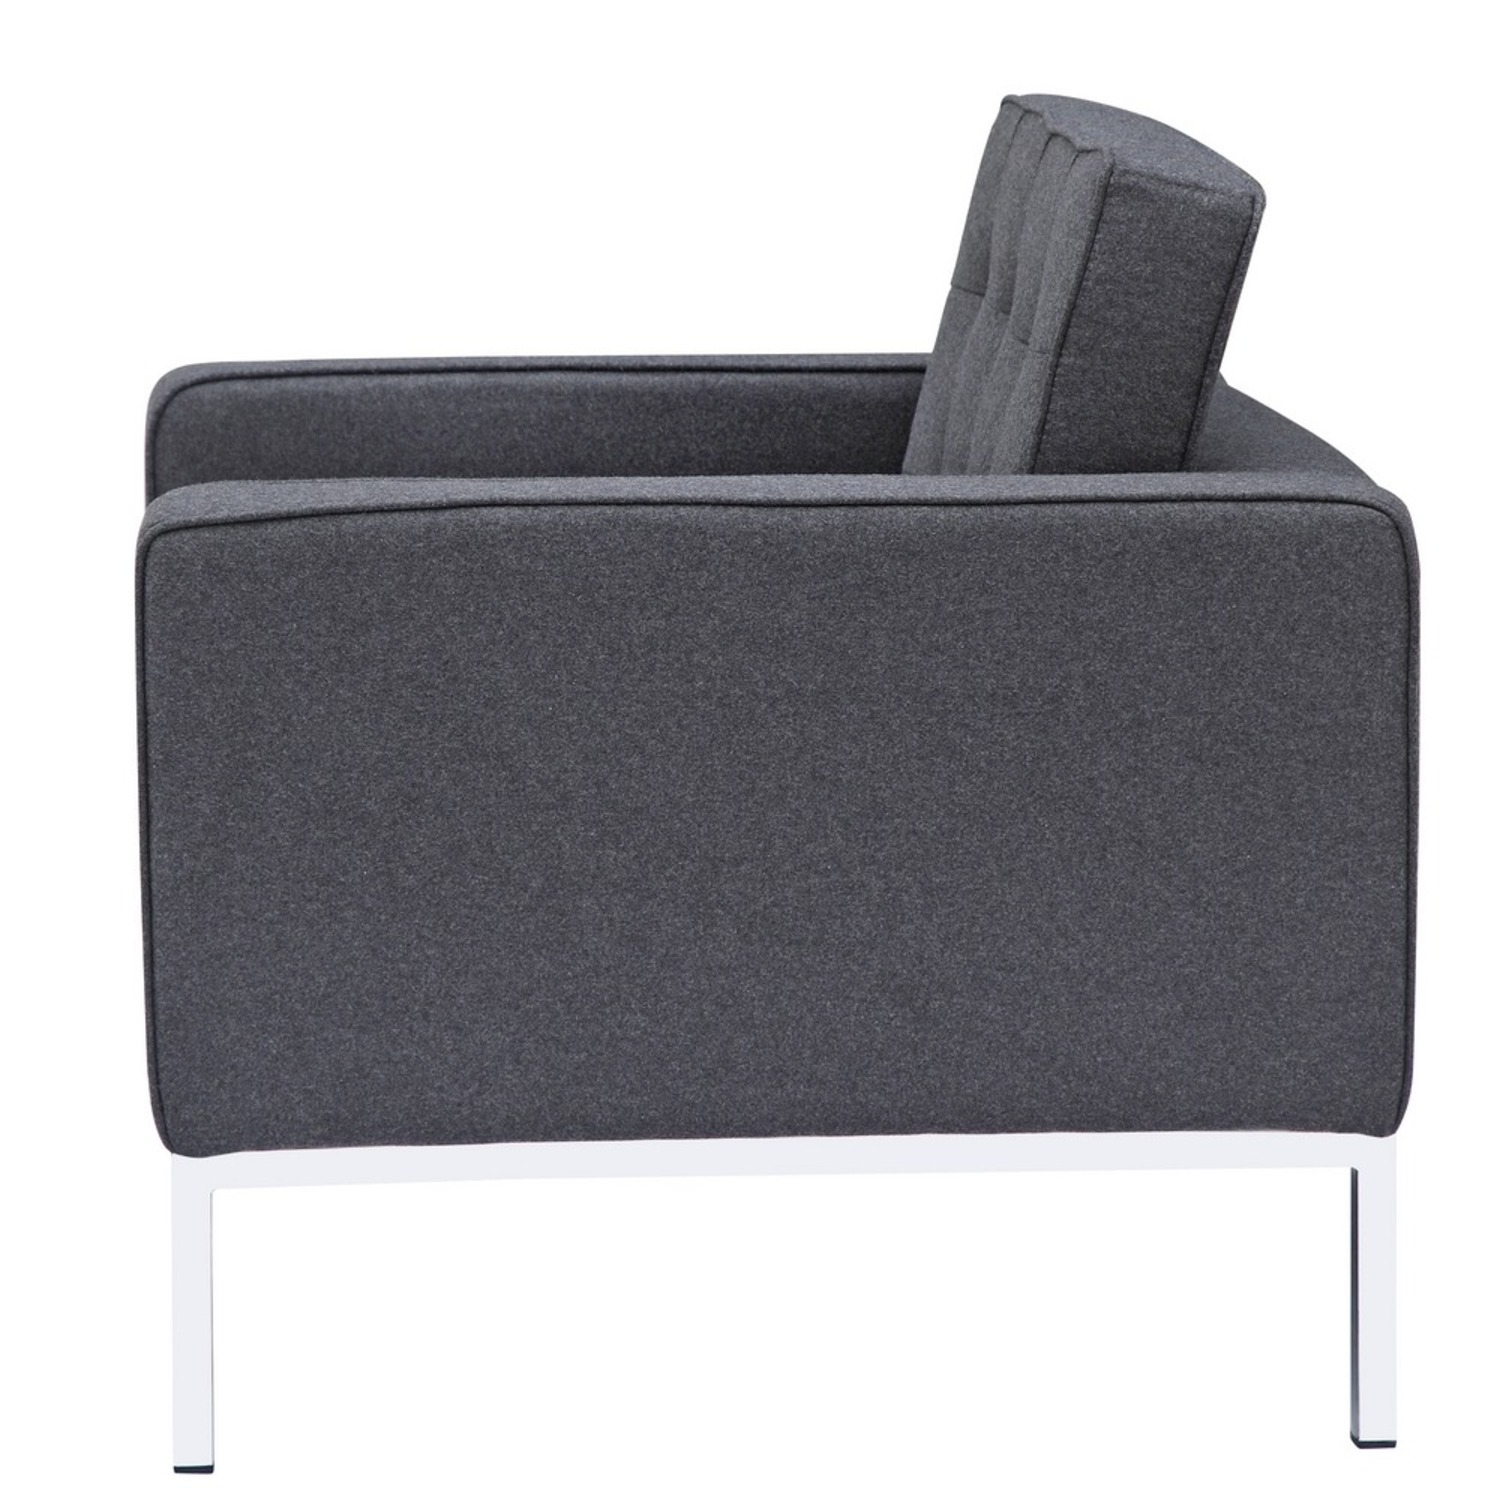 Contemporary Chair In Gray Wool Fabric - image-3